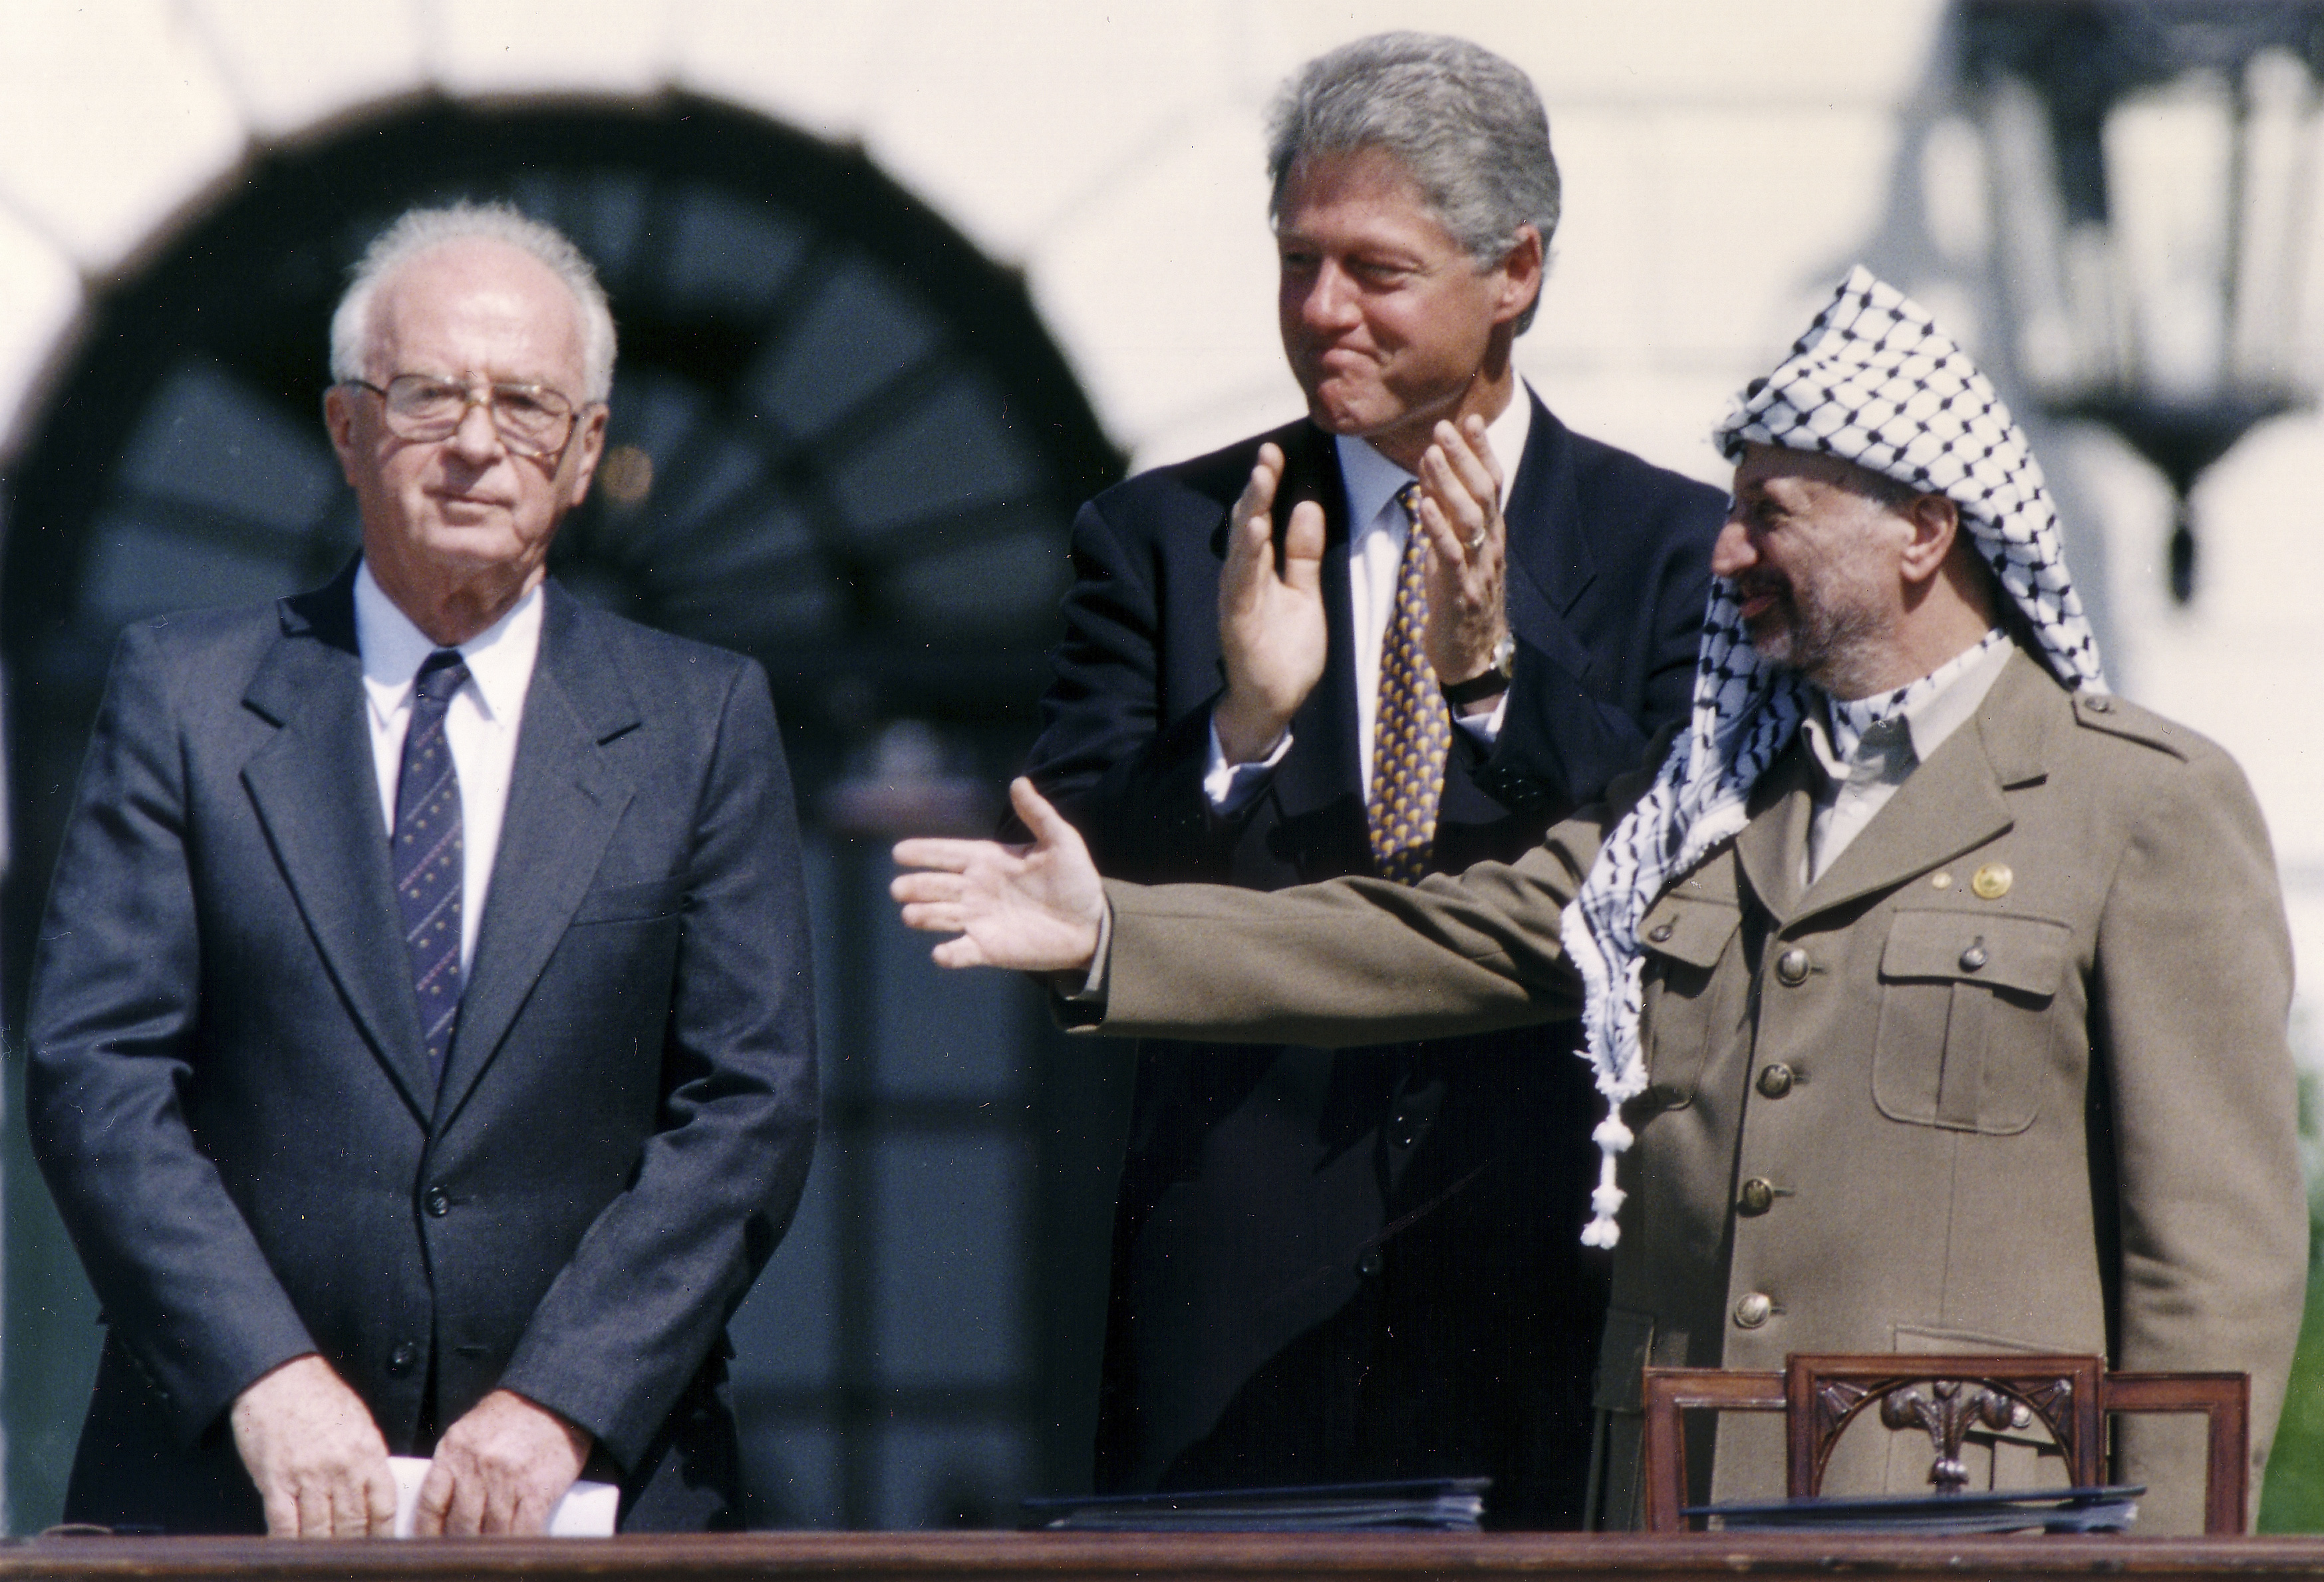 US President Bill Clinton stands between PLO leader Yasser Arafat and Israeli Prime Minister Yitzhak Rabin as they shake hands in September 1993 in Washington after signing the first Oslo accord (AFP)